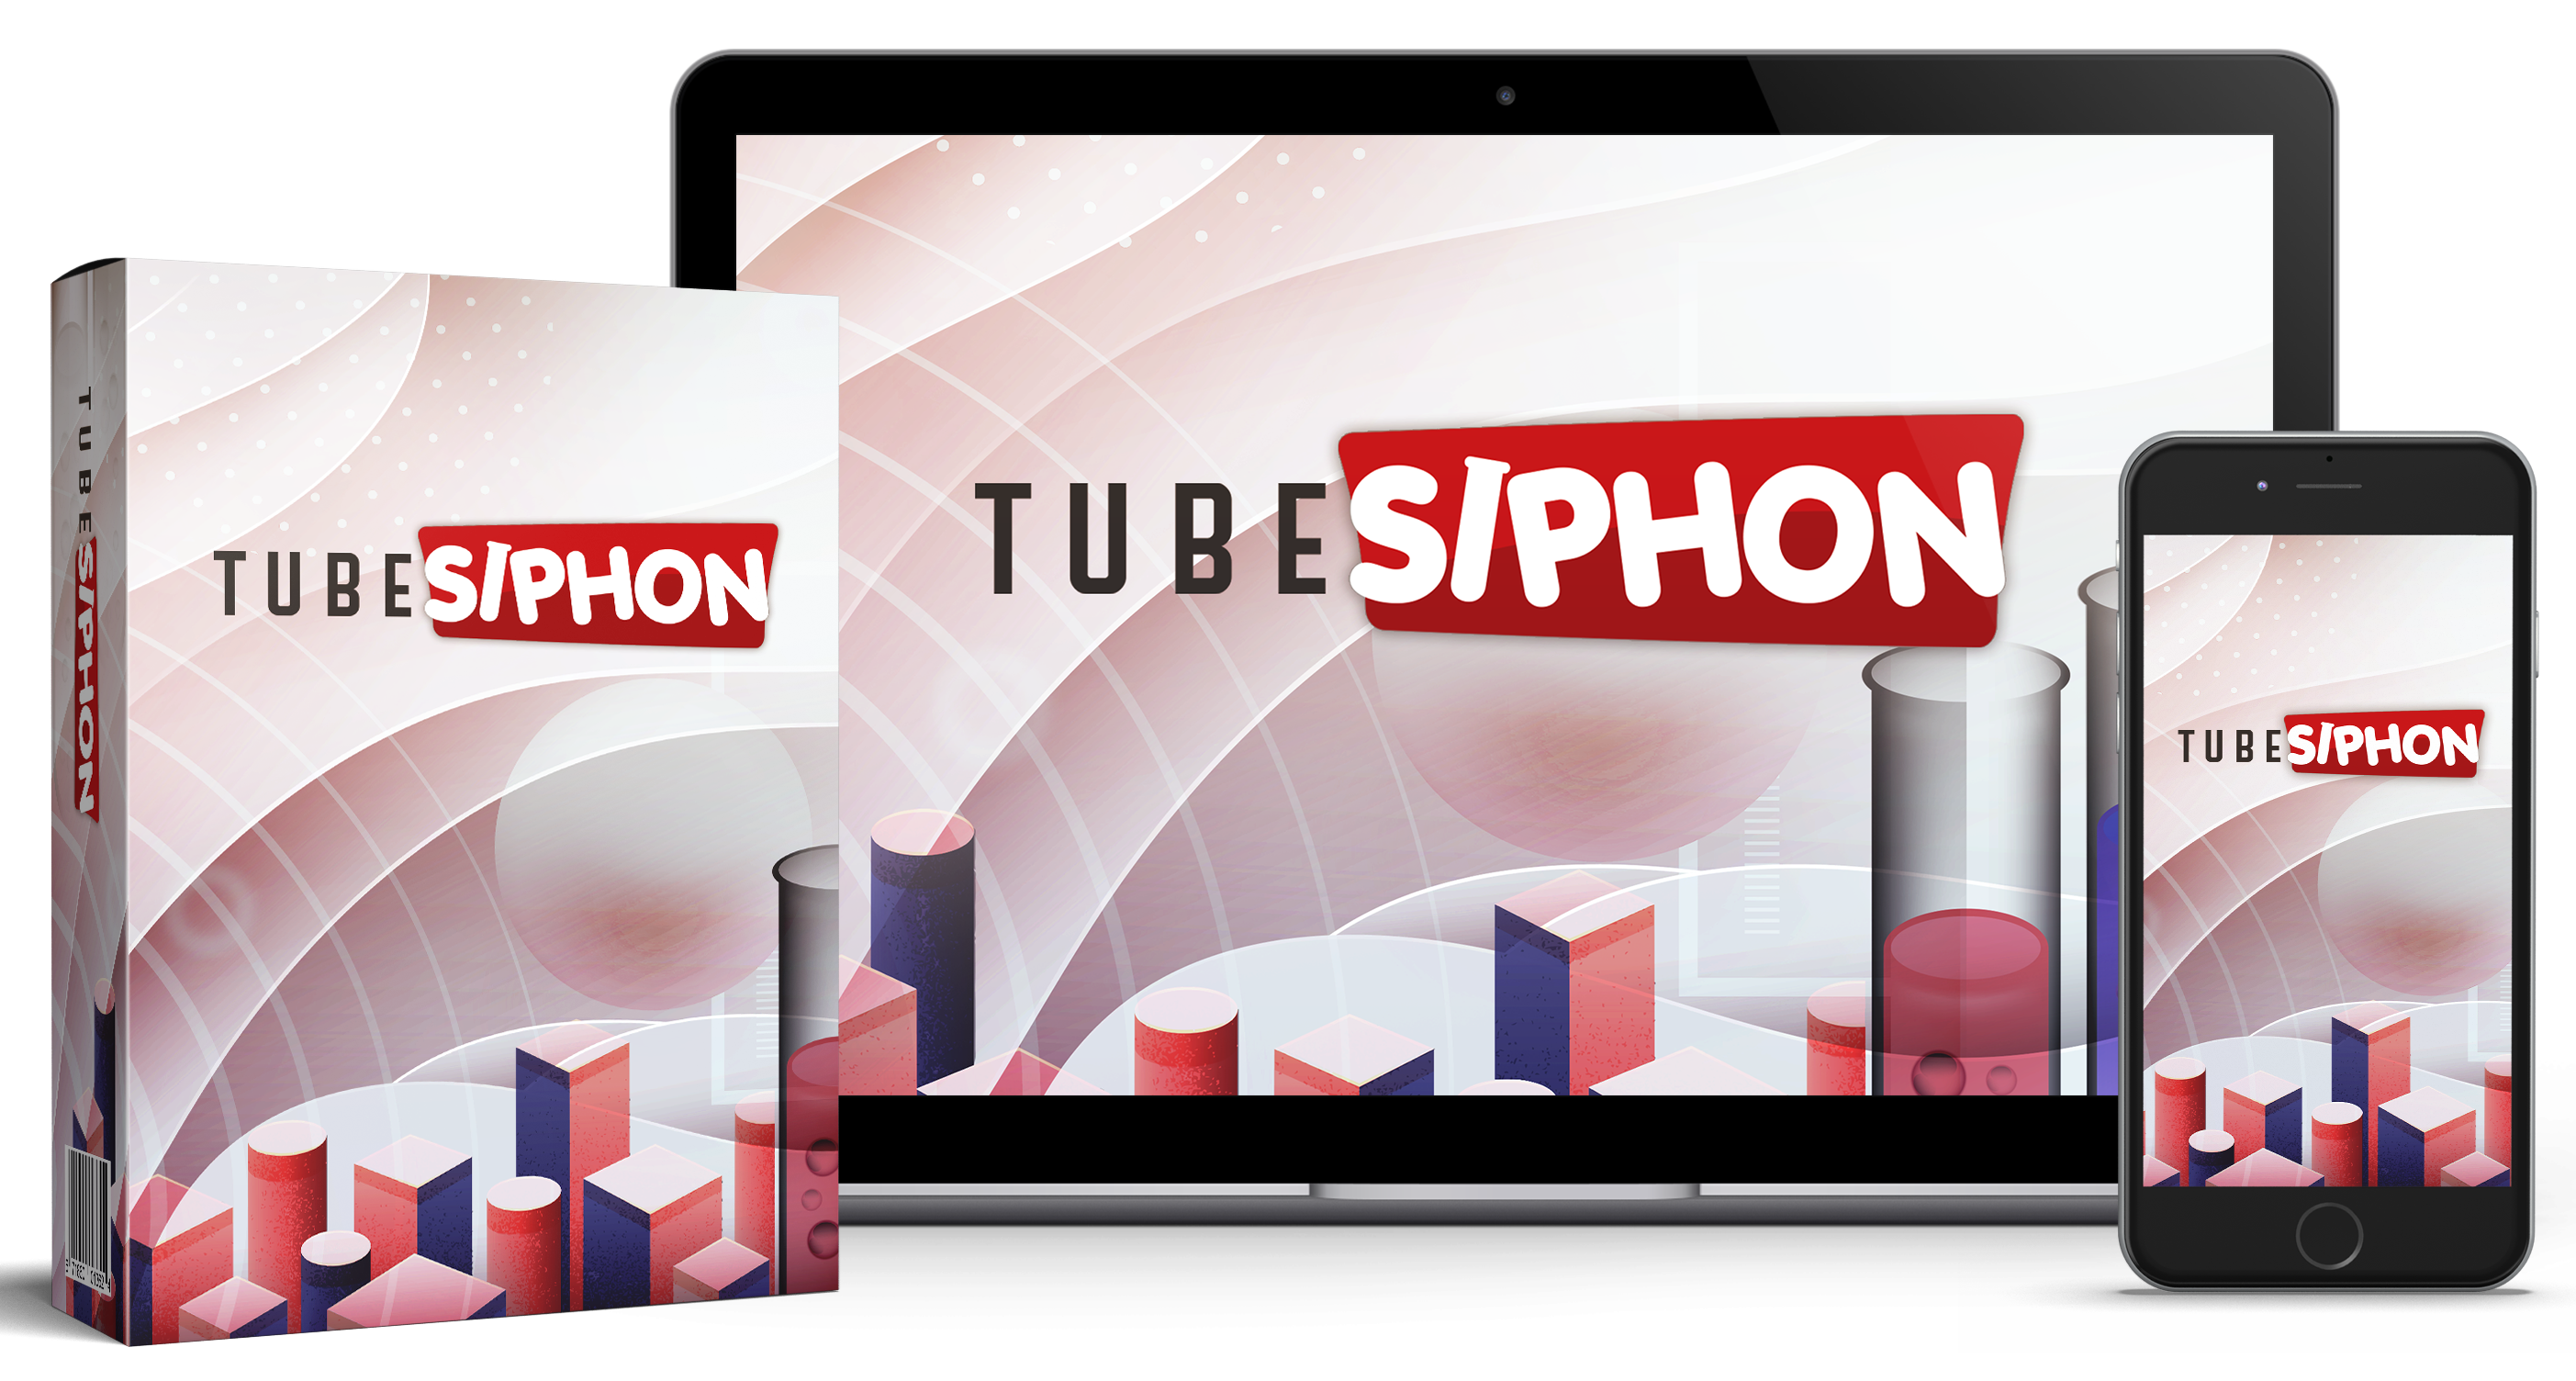 tubesiphon reviews